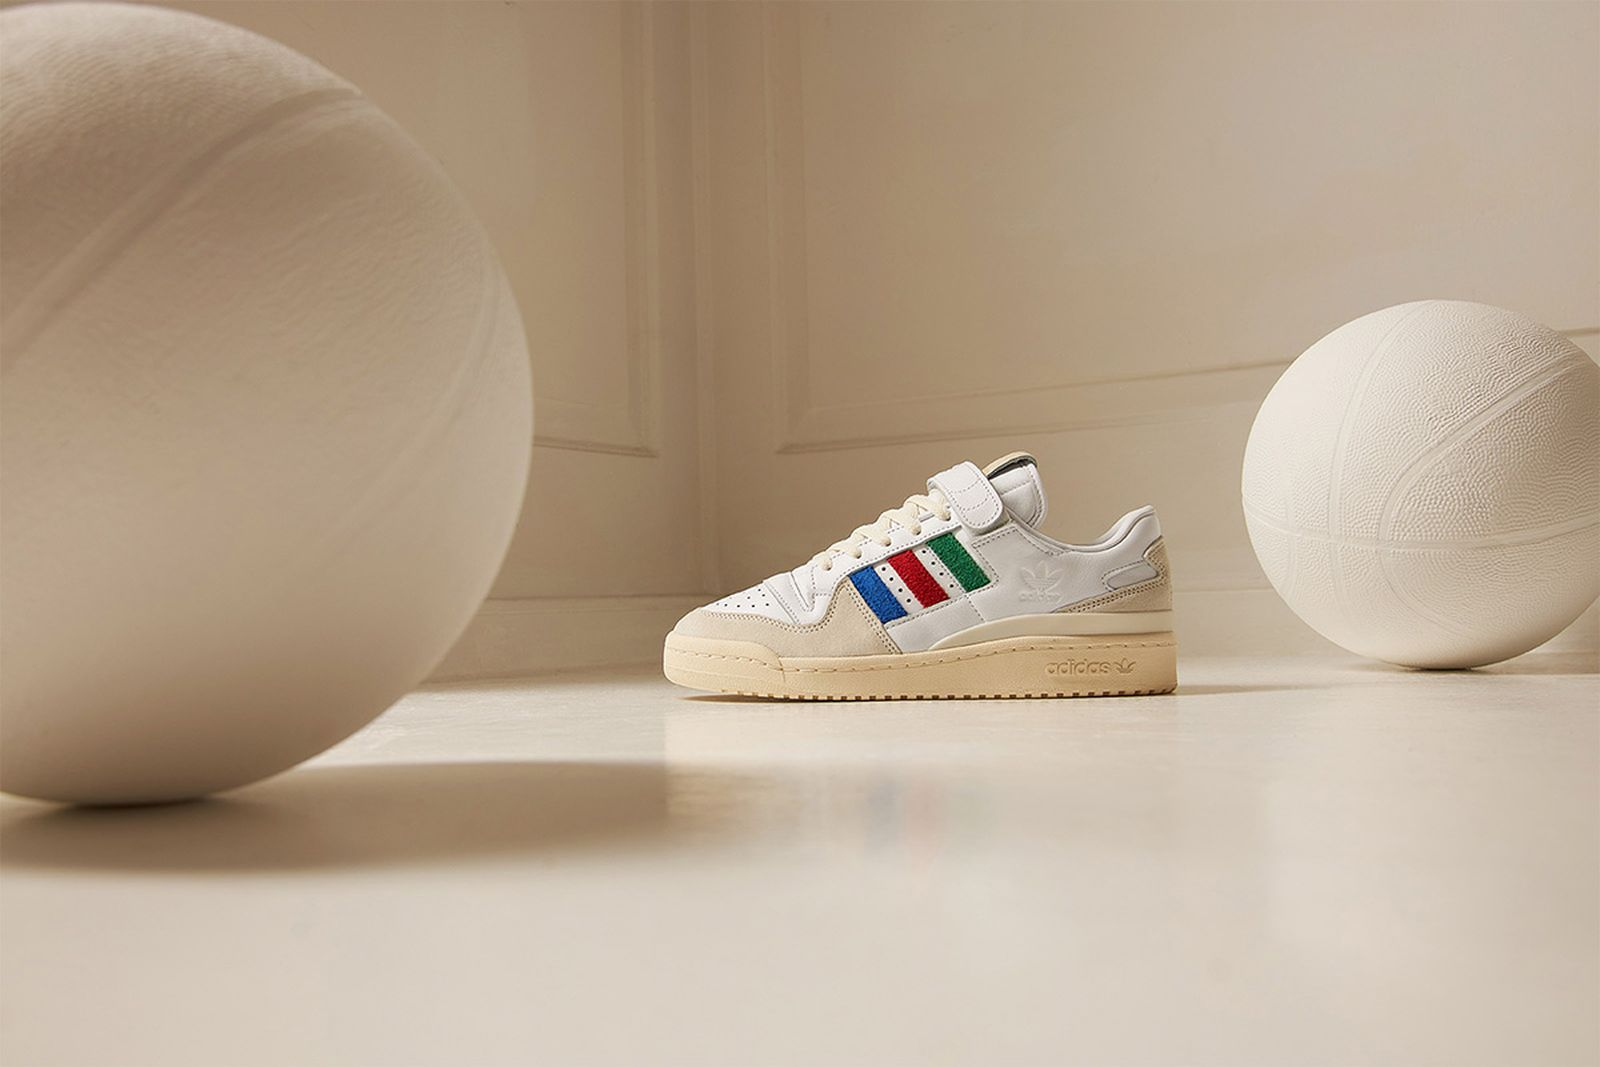 end-adidas-forum-low-release-date-price-02